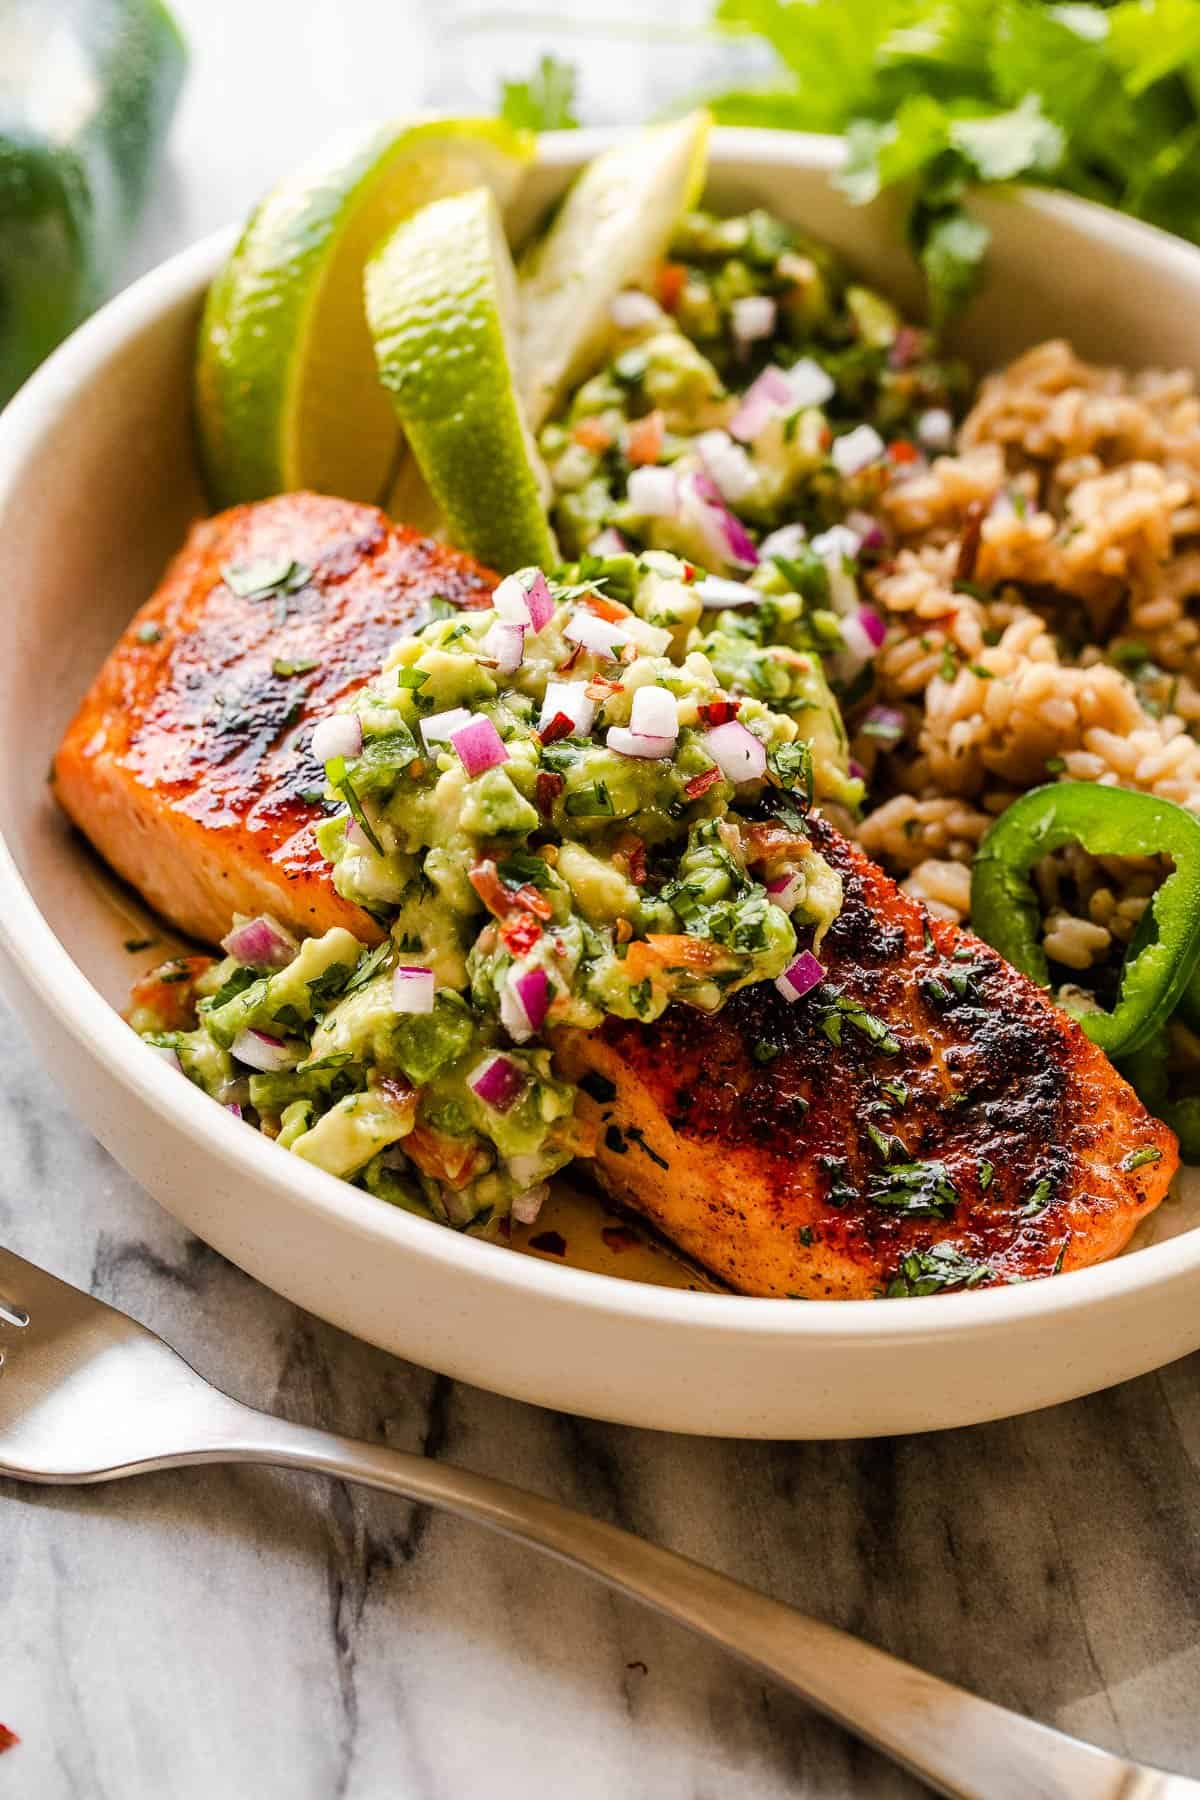 salmon fillet in a bowl atop of rice and served with avocado salsa